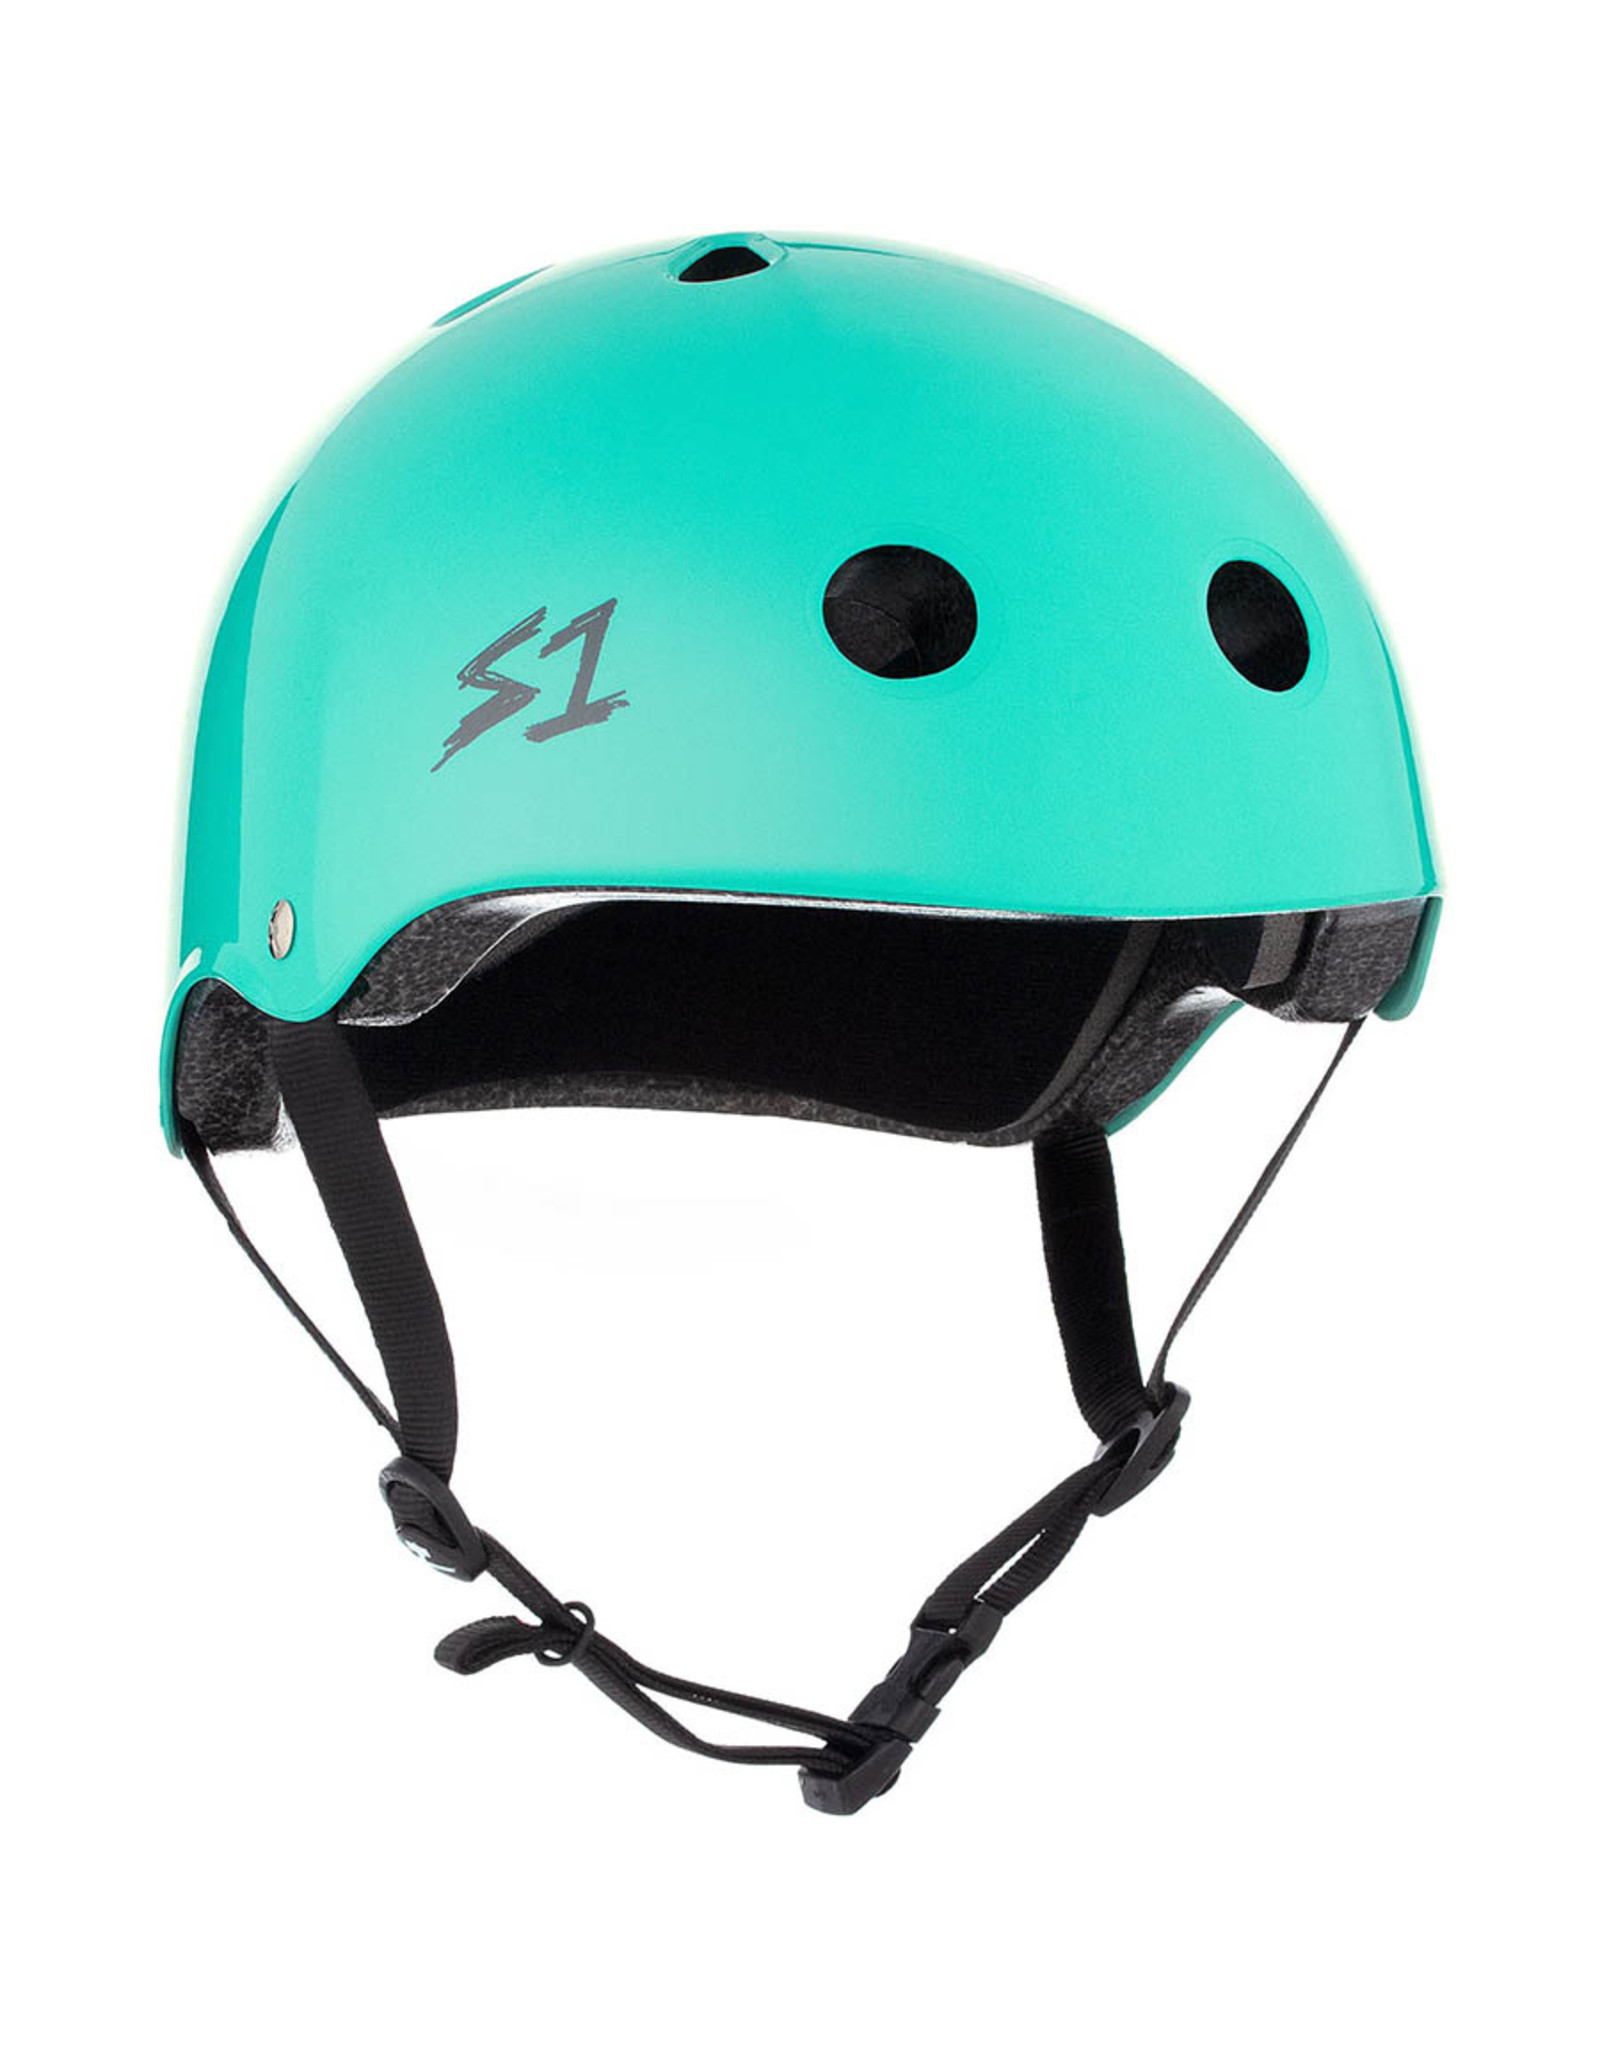 S-One S-One Helmet The Adult Lifer (Lagoon Gloss/Black Straps)